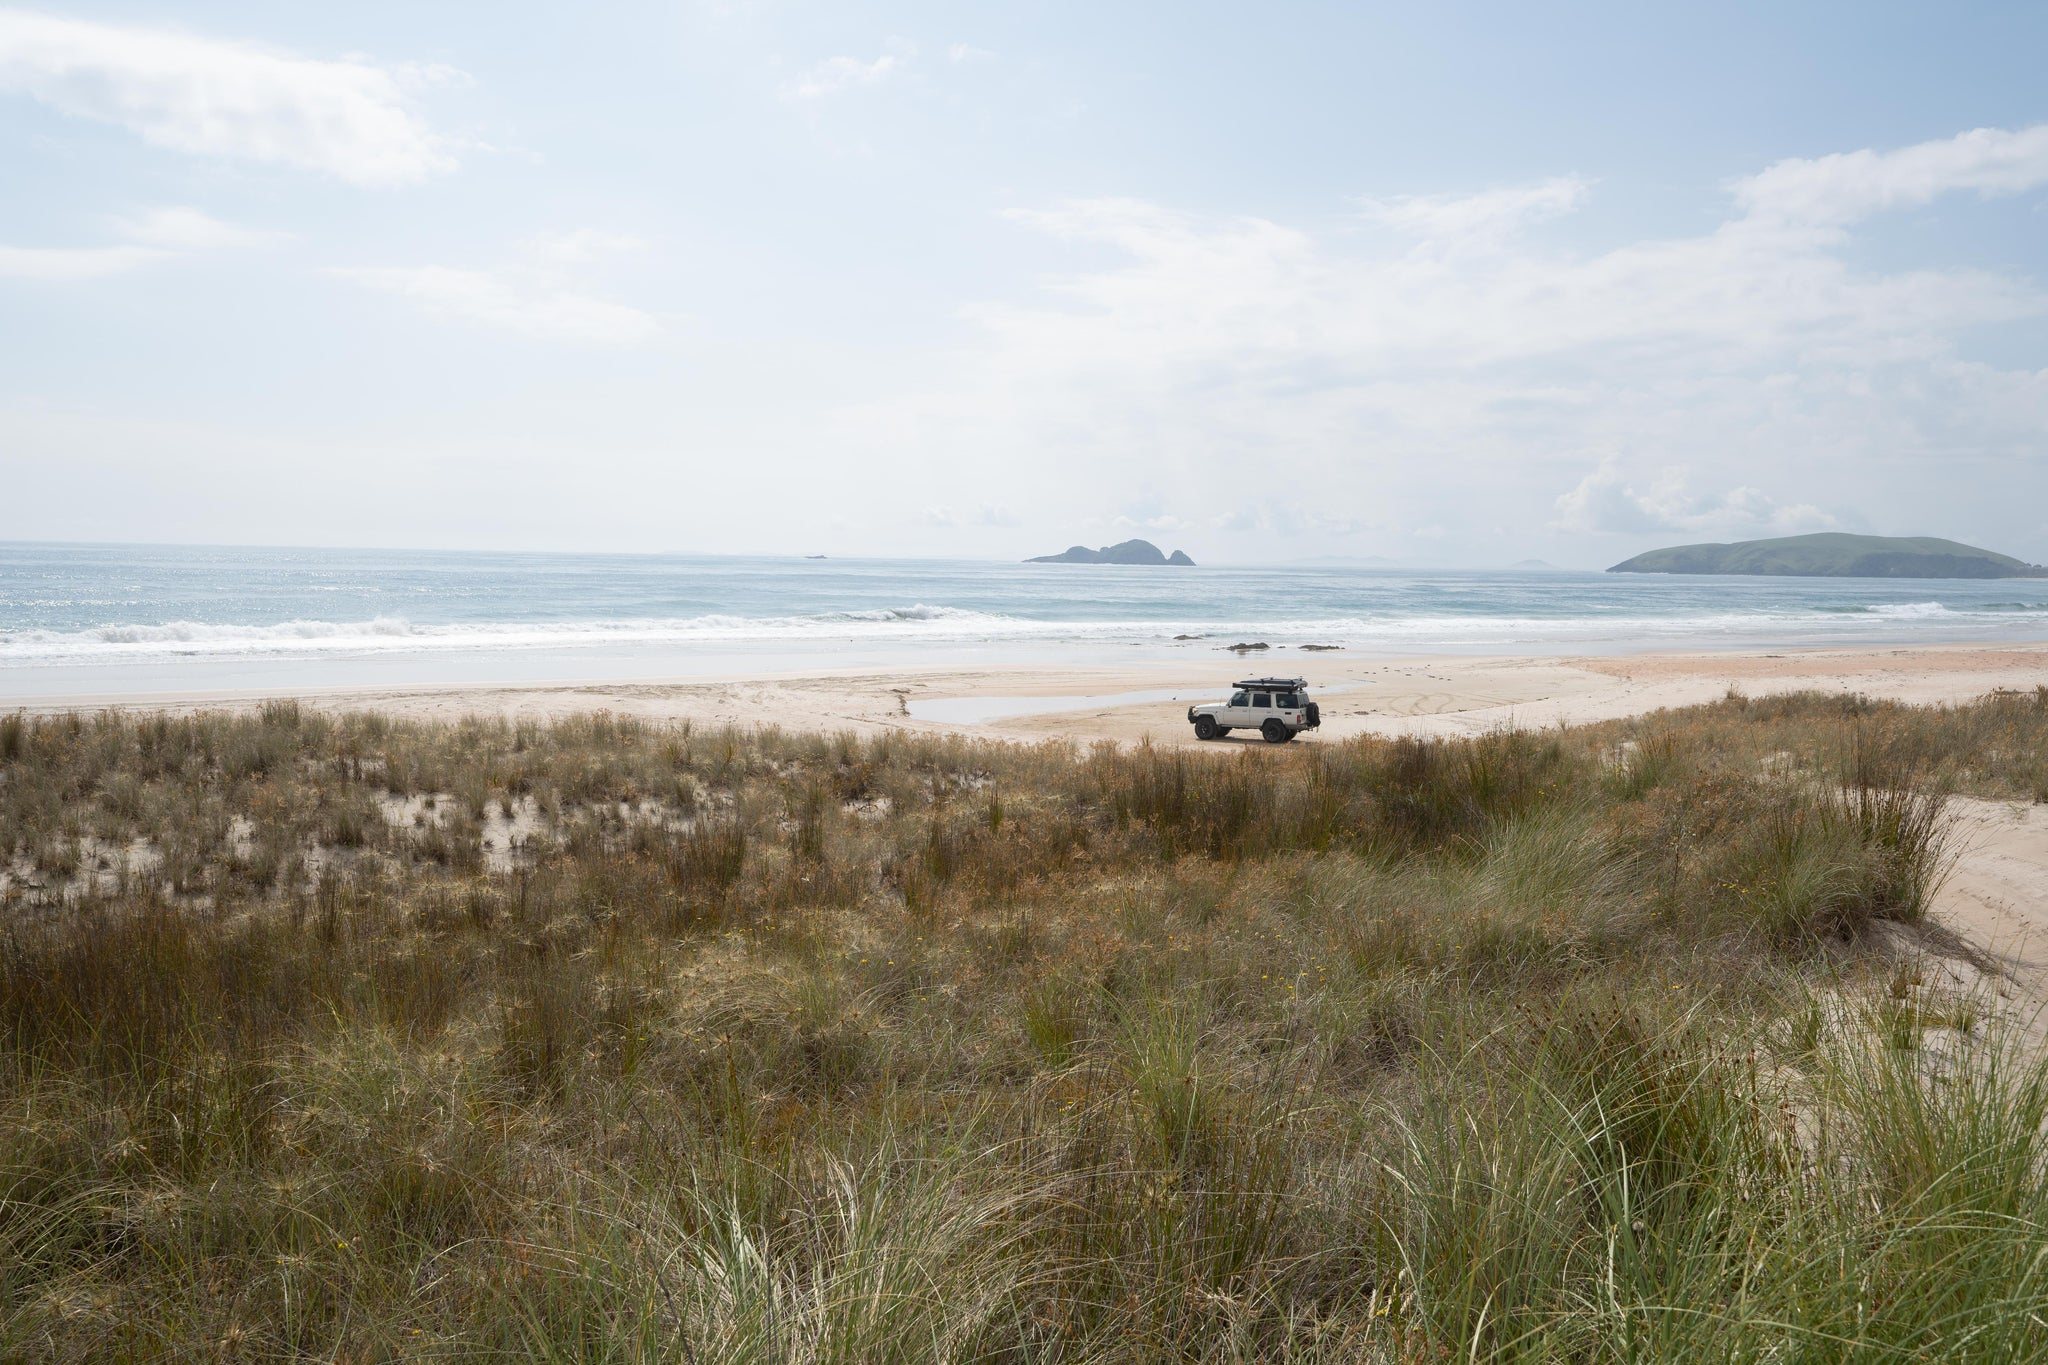 Remote 4wd beach with Landcruiser 76